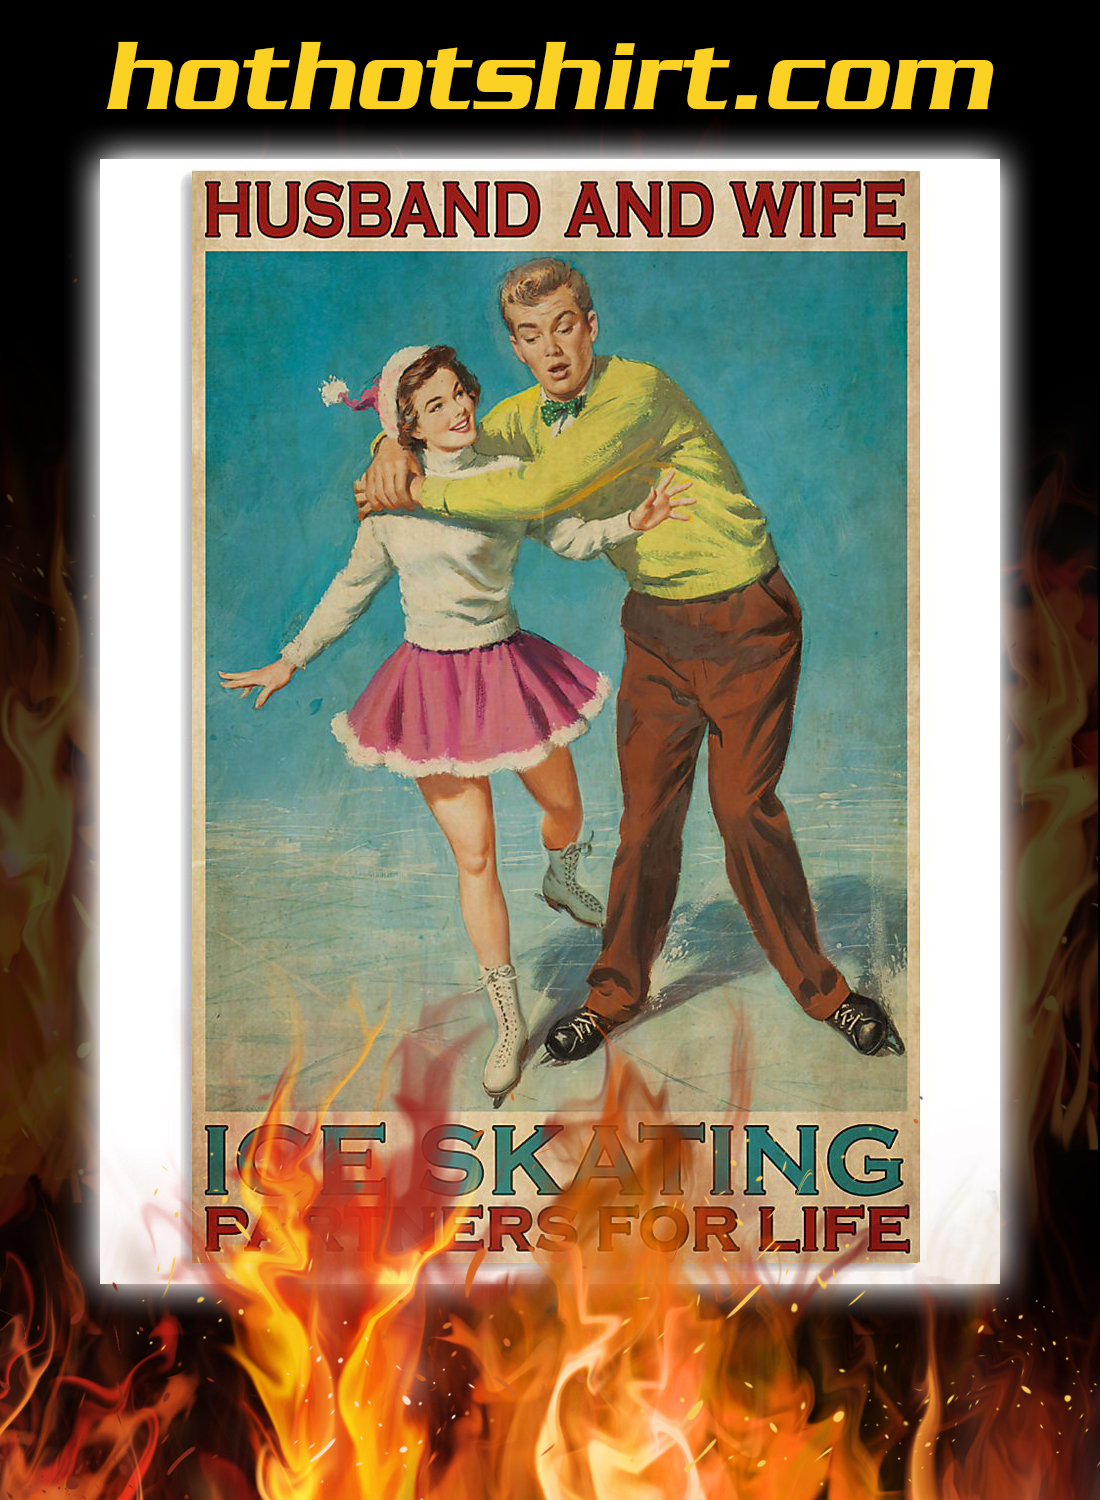 Husband and wife ice skating partners for life poster